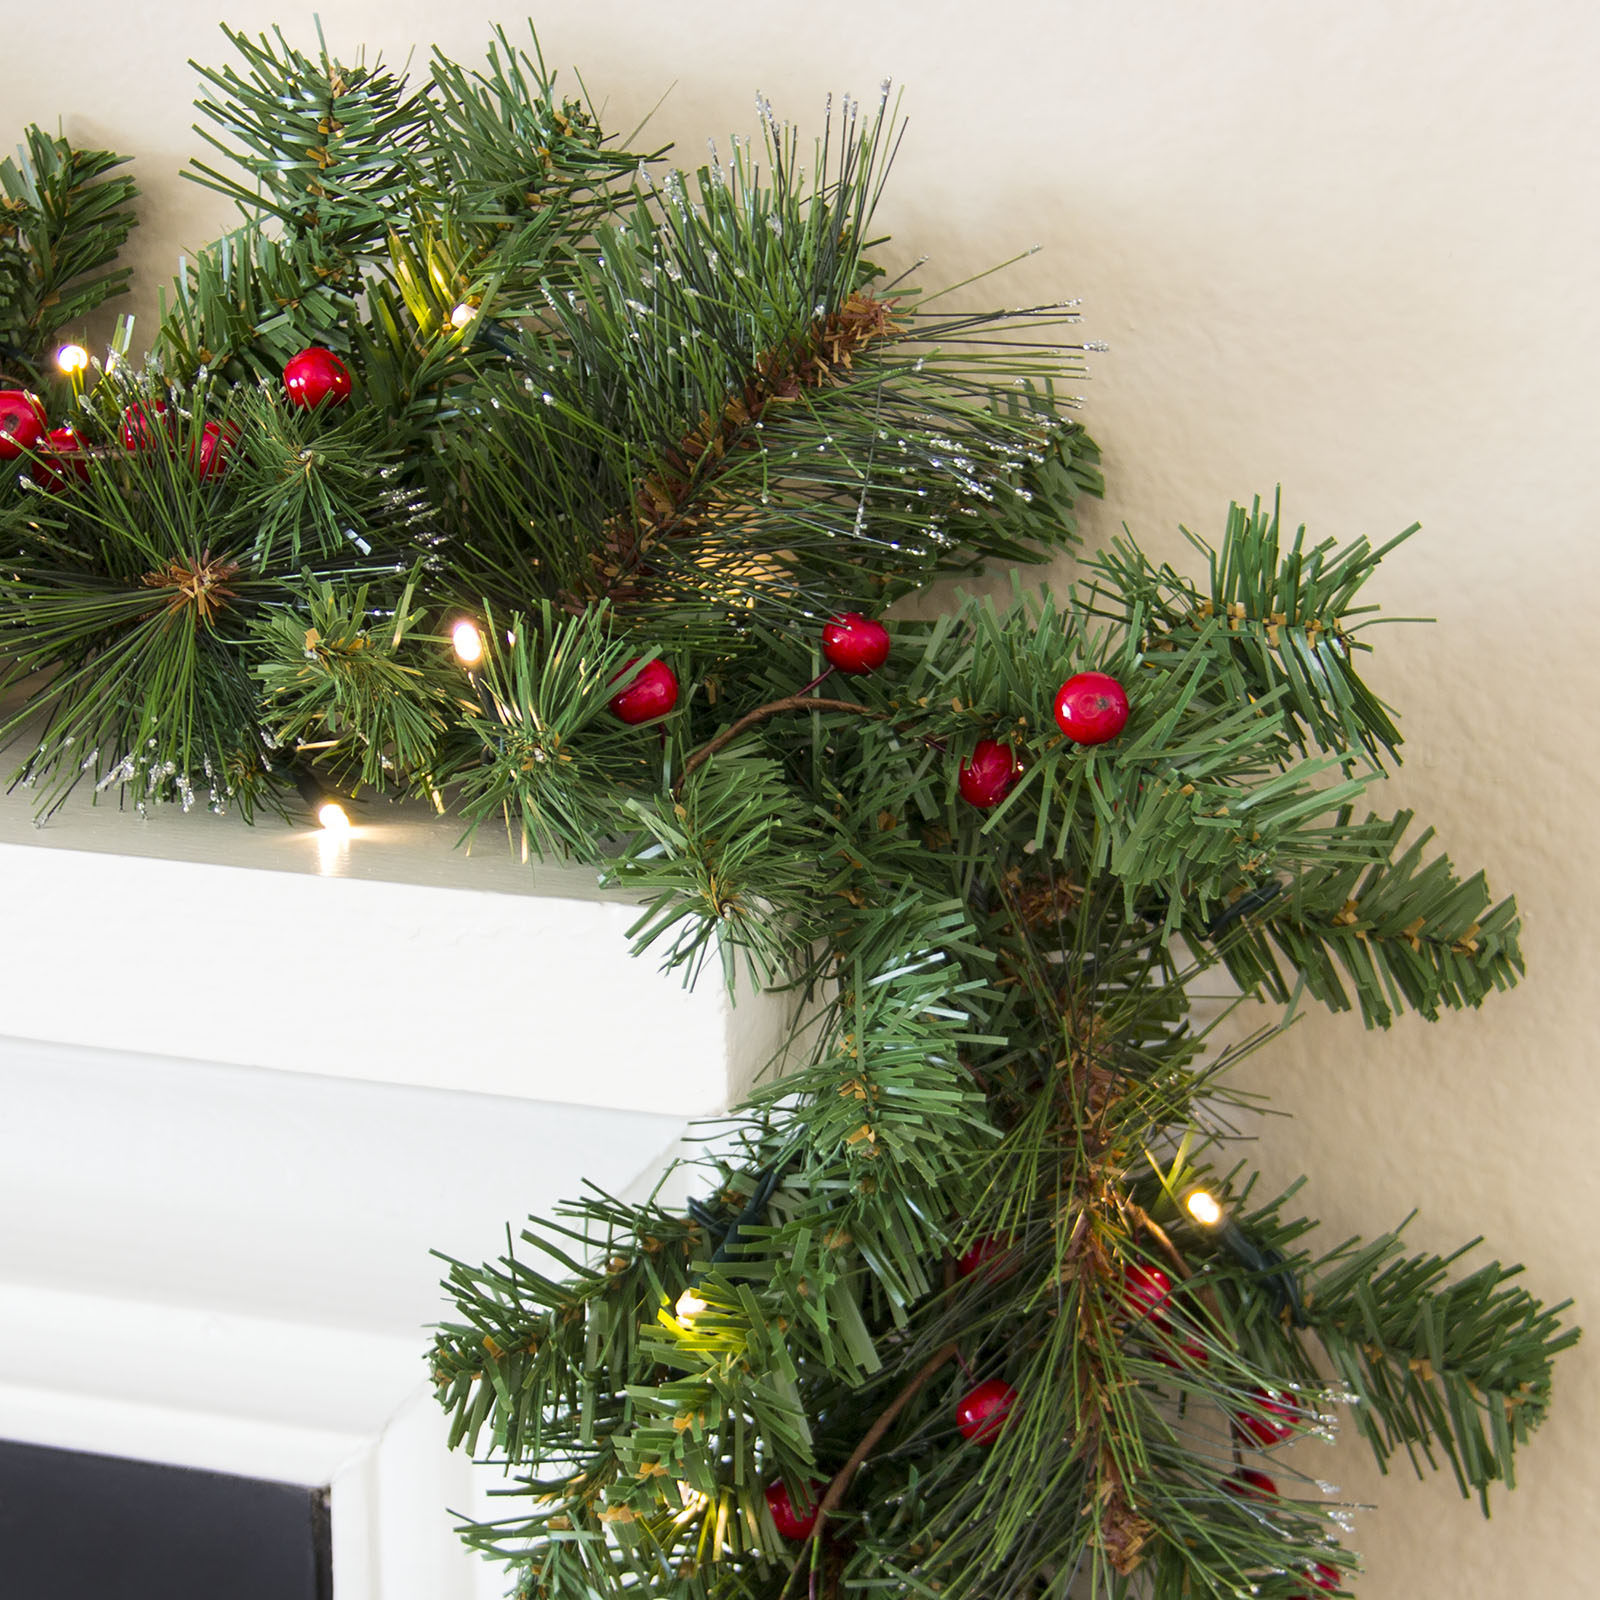 best choice products 9ft pre lit christmas garland w 50 led lights silver bristles pine cones berries green walmartcom - Green Christmas Garland